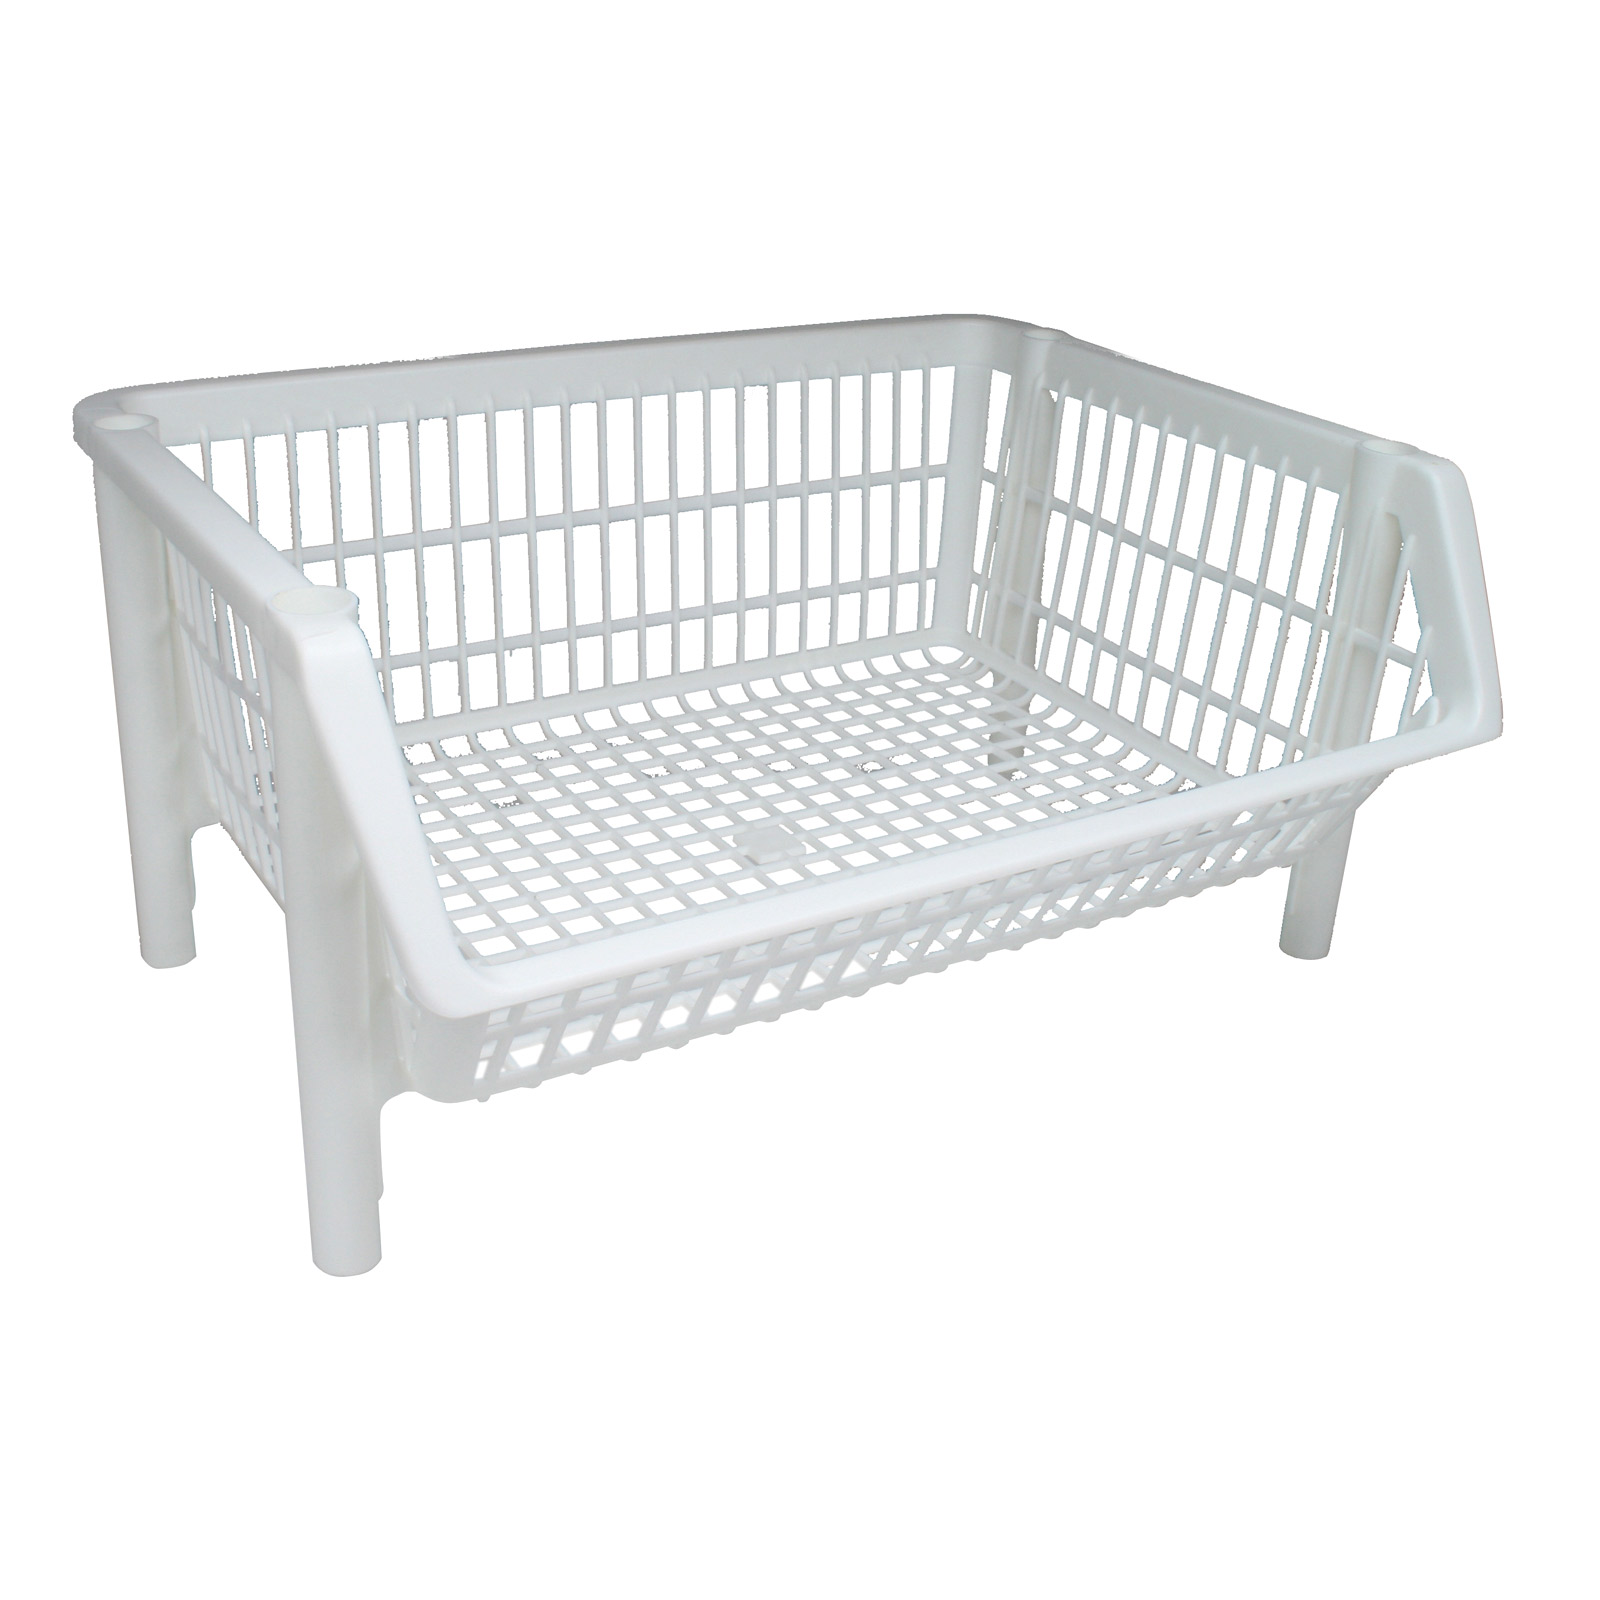 Iris Stackable Plastic Storage Basket   White Image